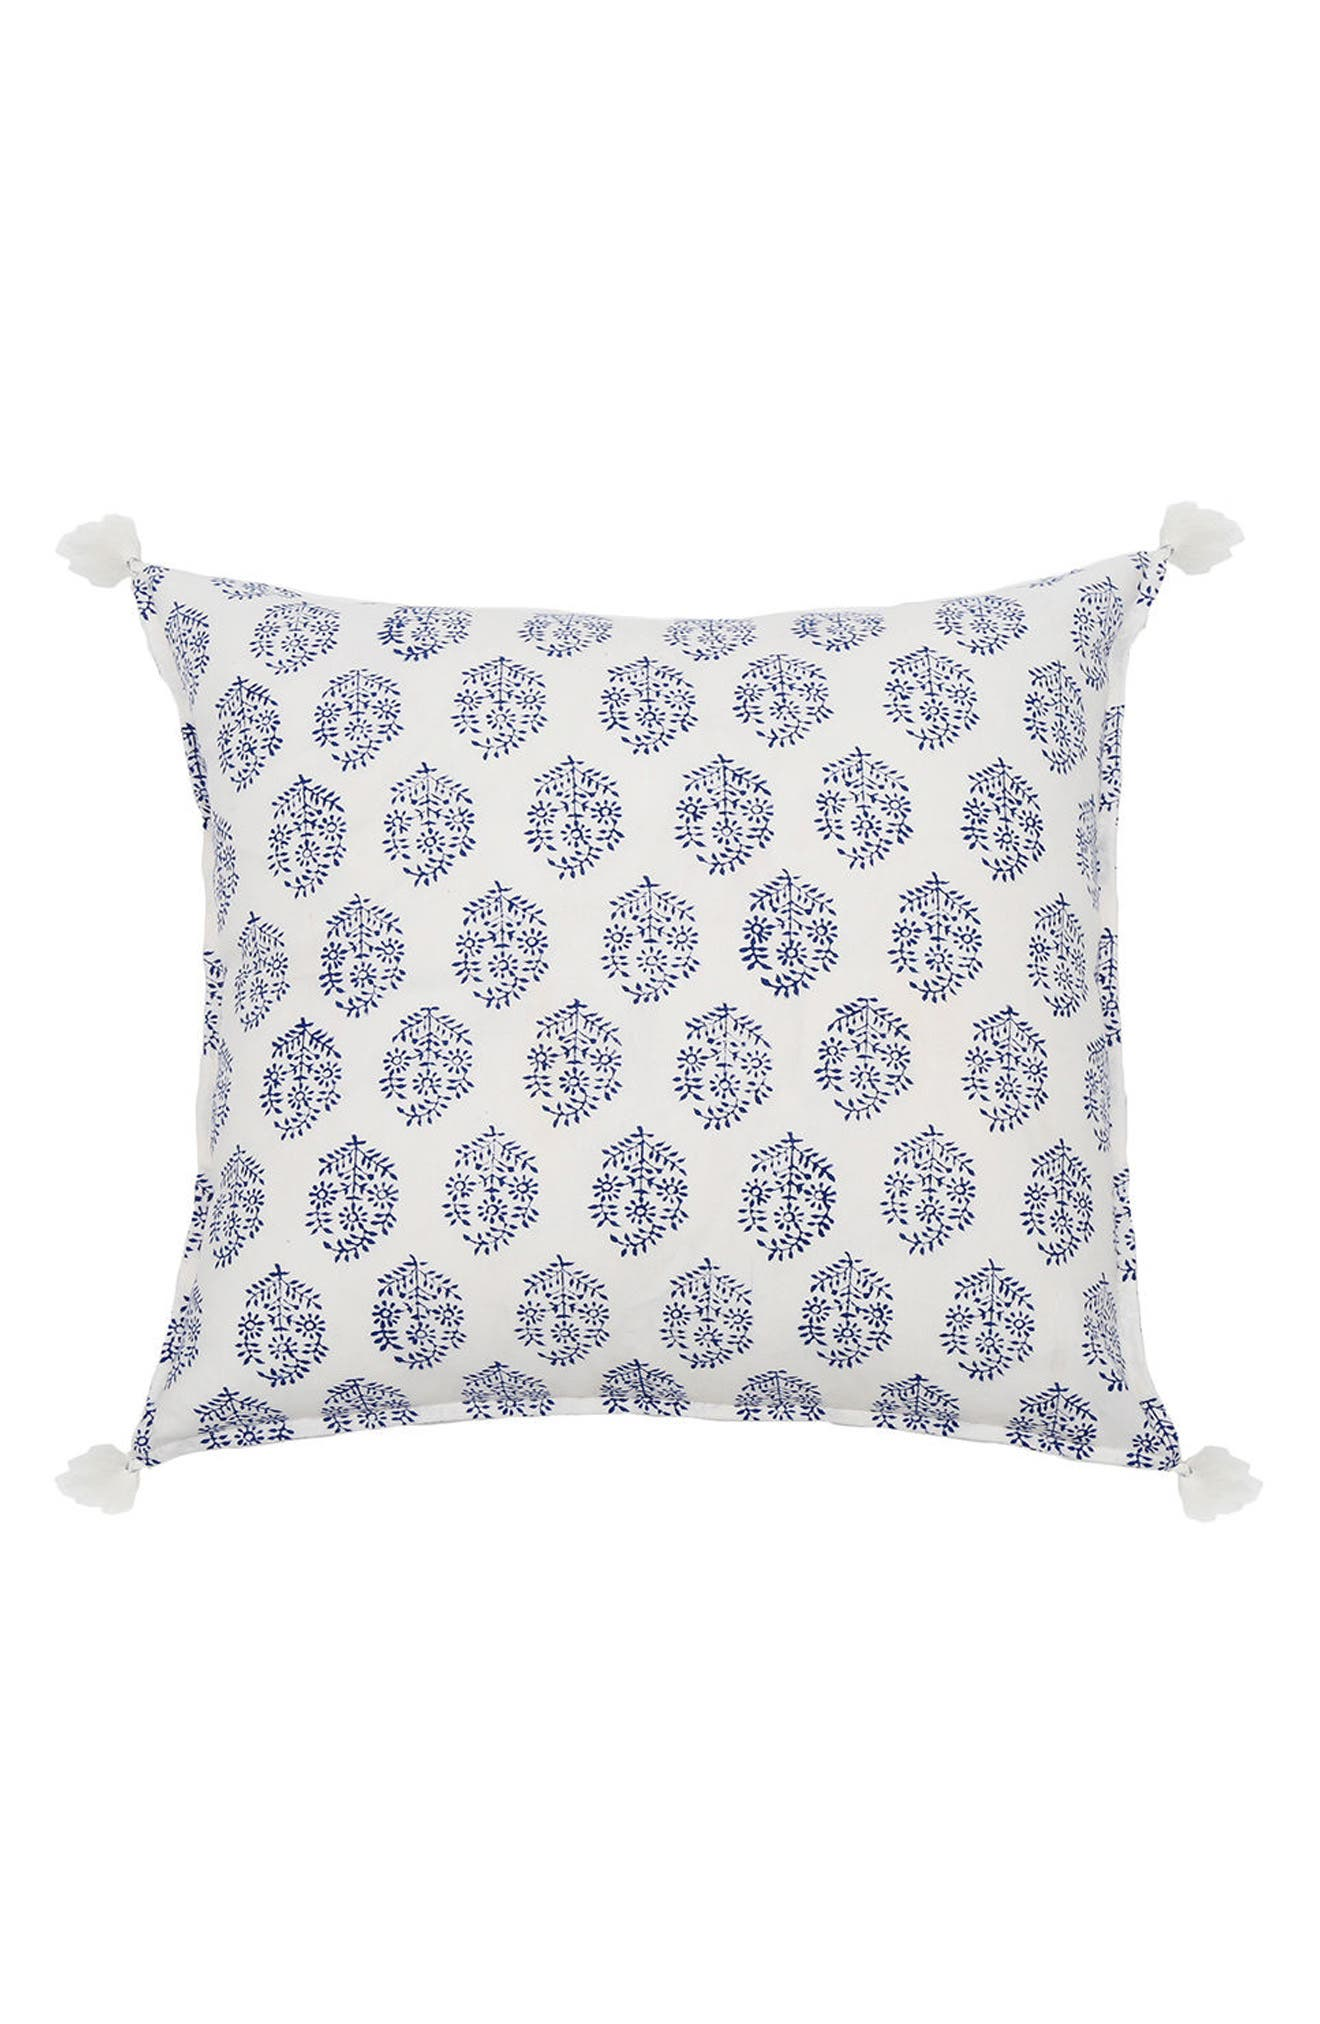 Alternate Image 1 Selected - Pom Pom at Home Fena Accent Pillow